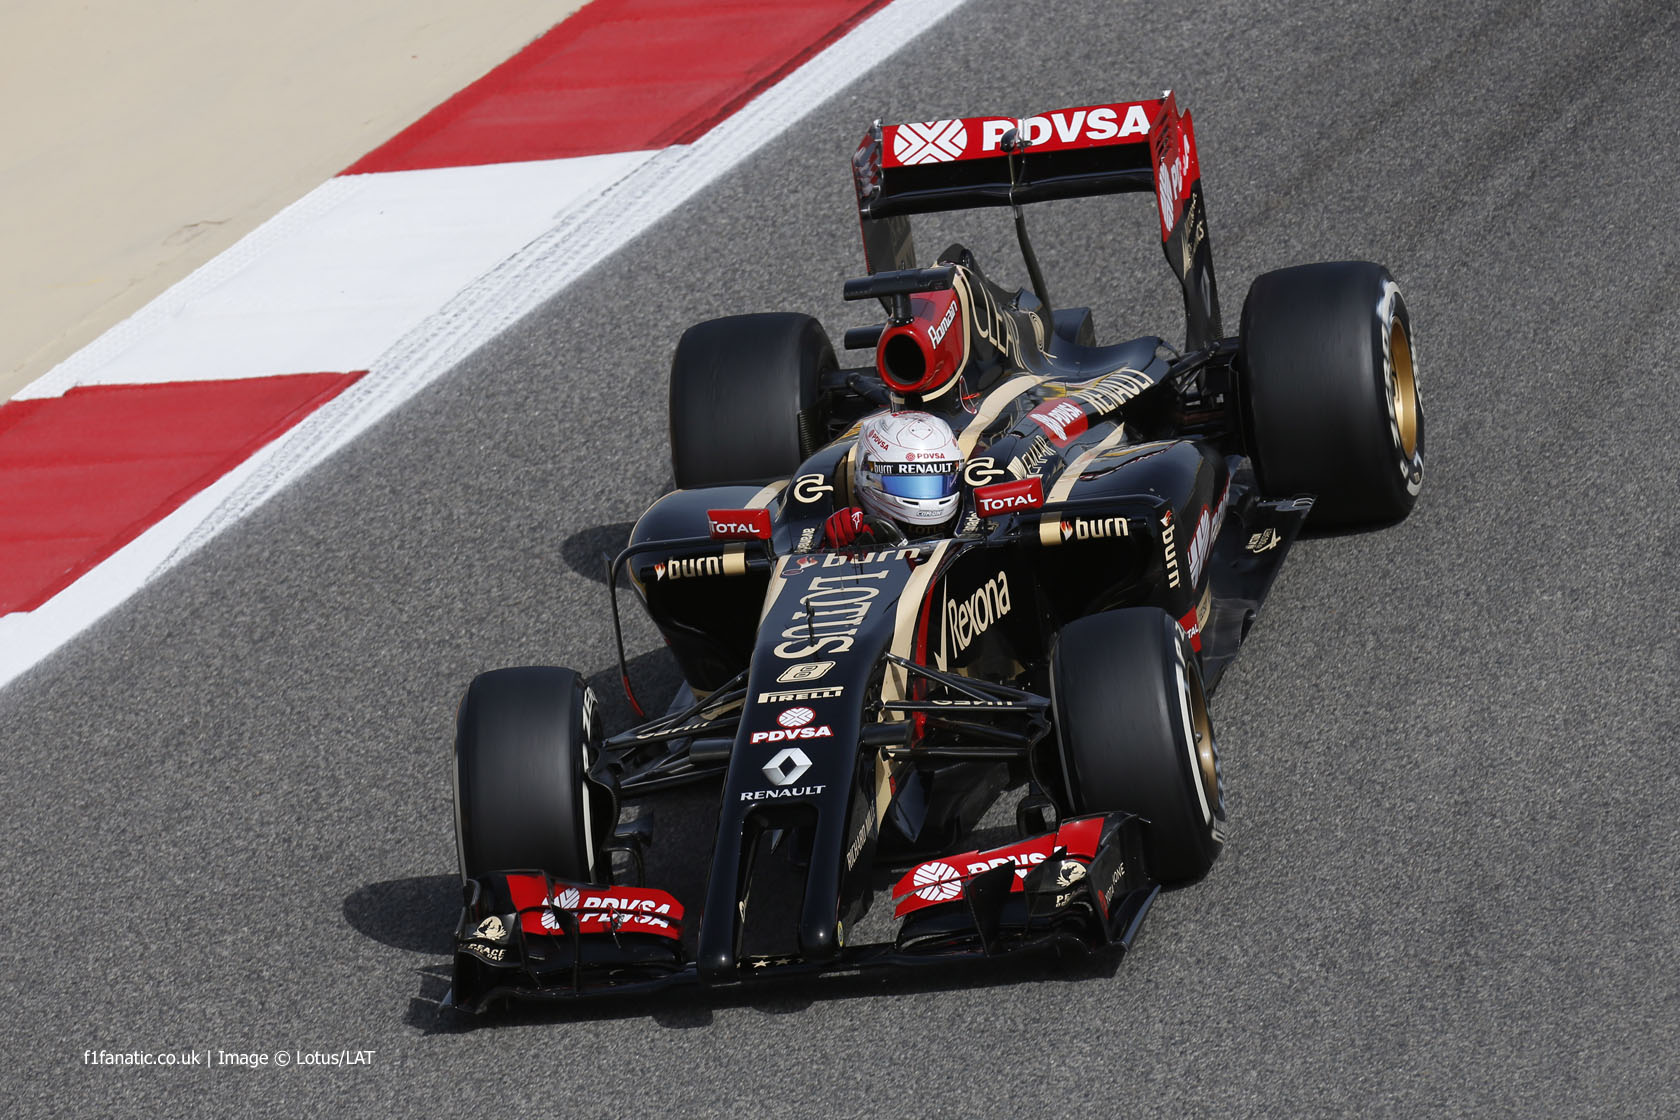 Romain Grosjean, Lotus, Bahrain International Circuit, 2014